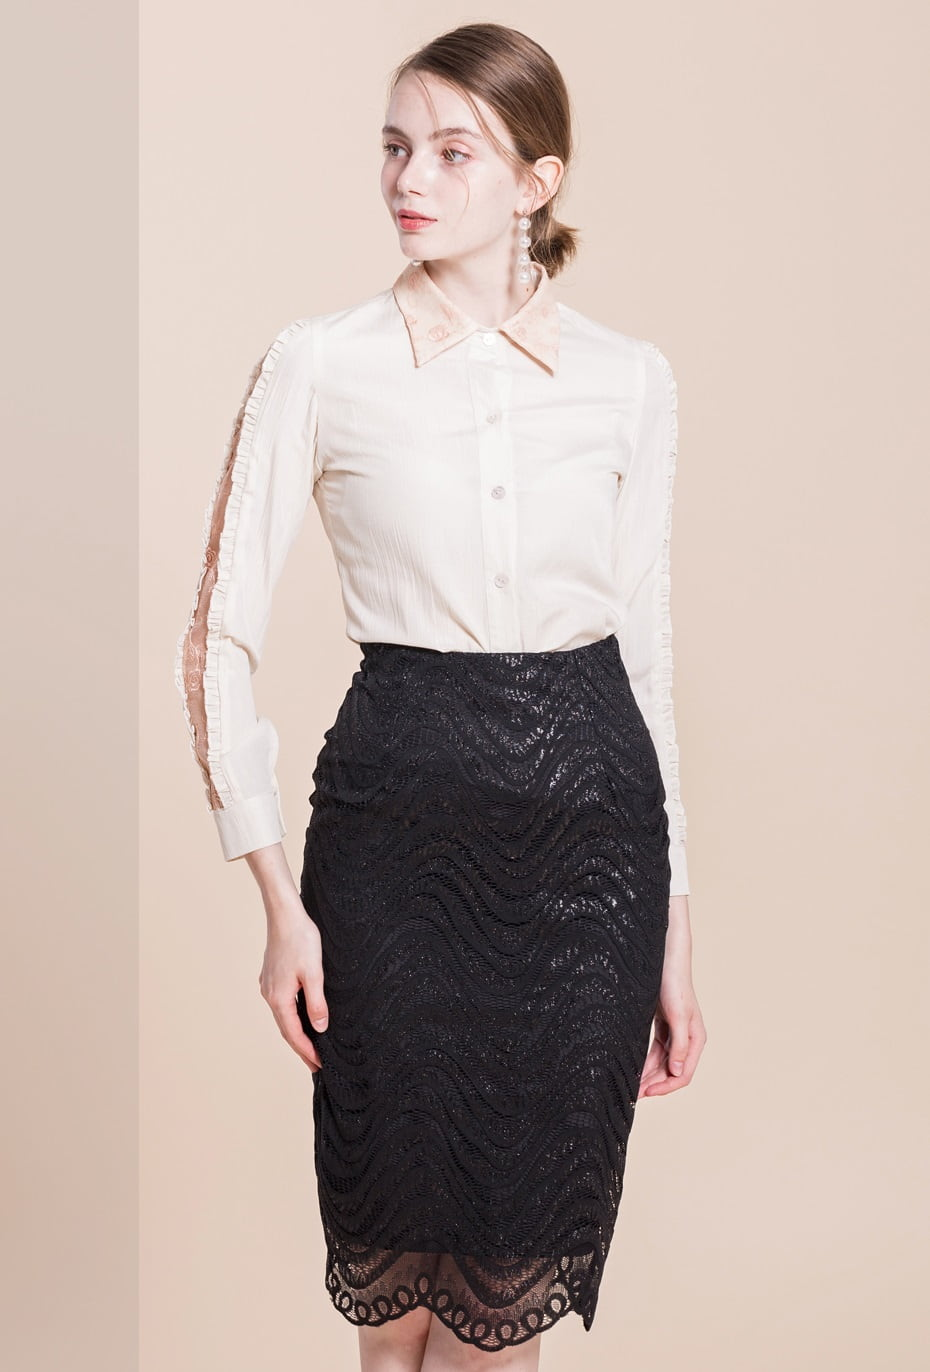 Lucy Black Lace Vintage Pencil Skirt Vintage Clothing